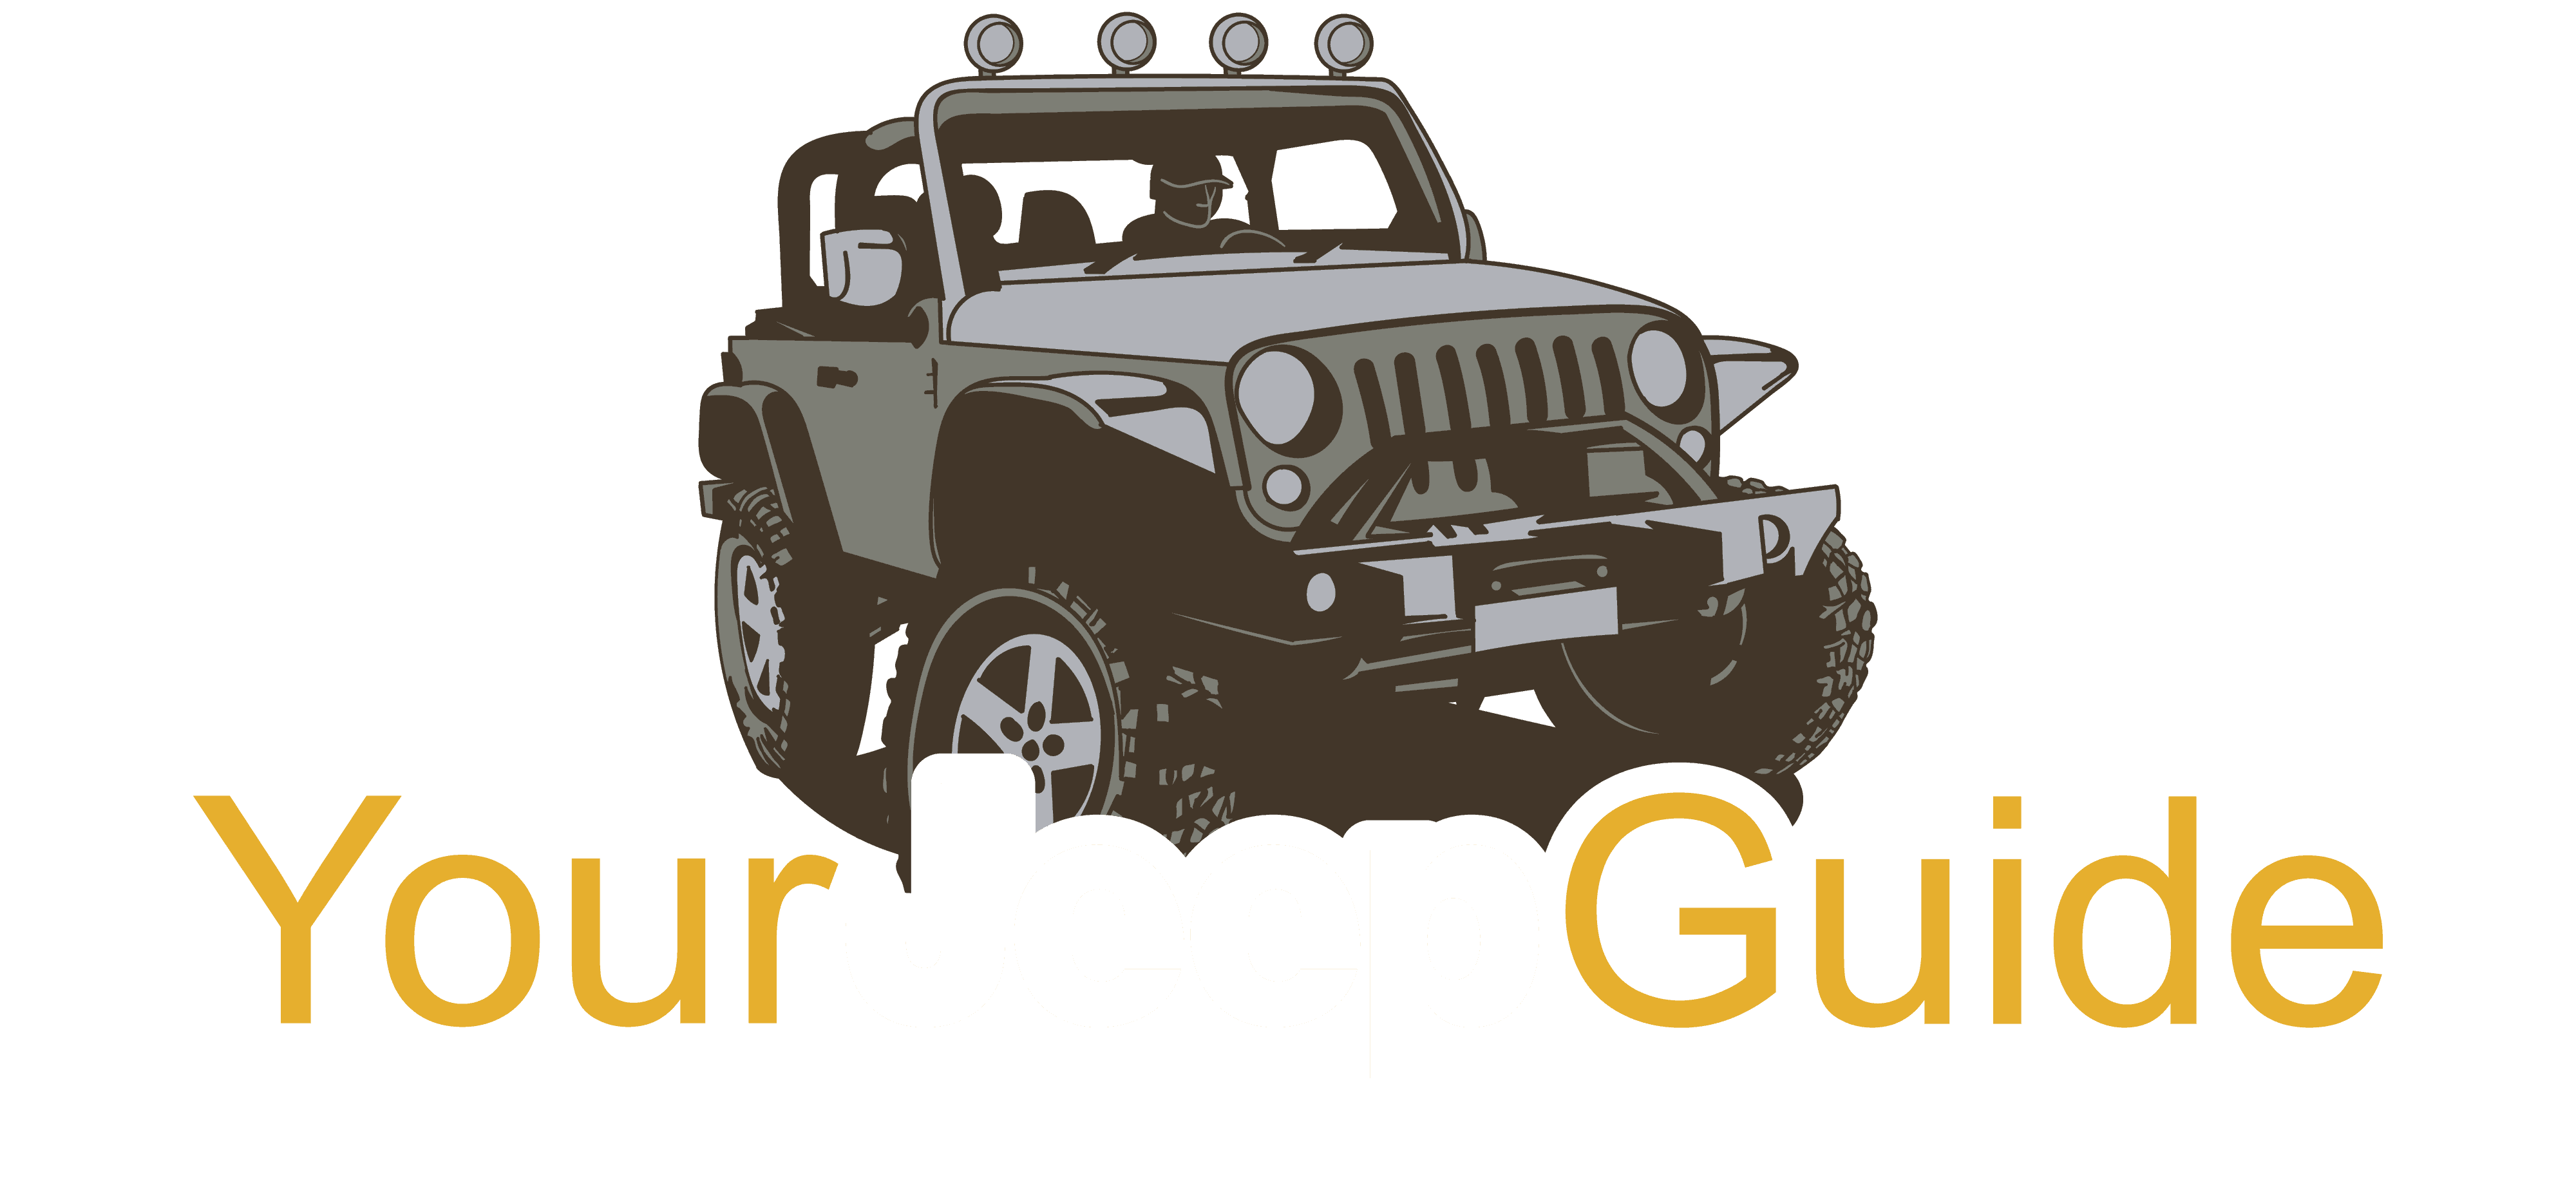 Your Jeep Guide